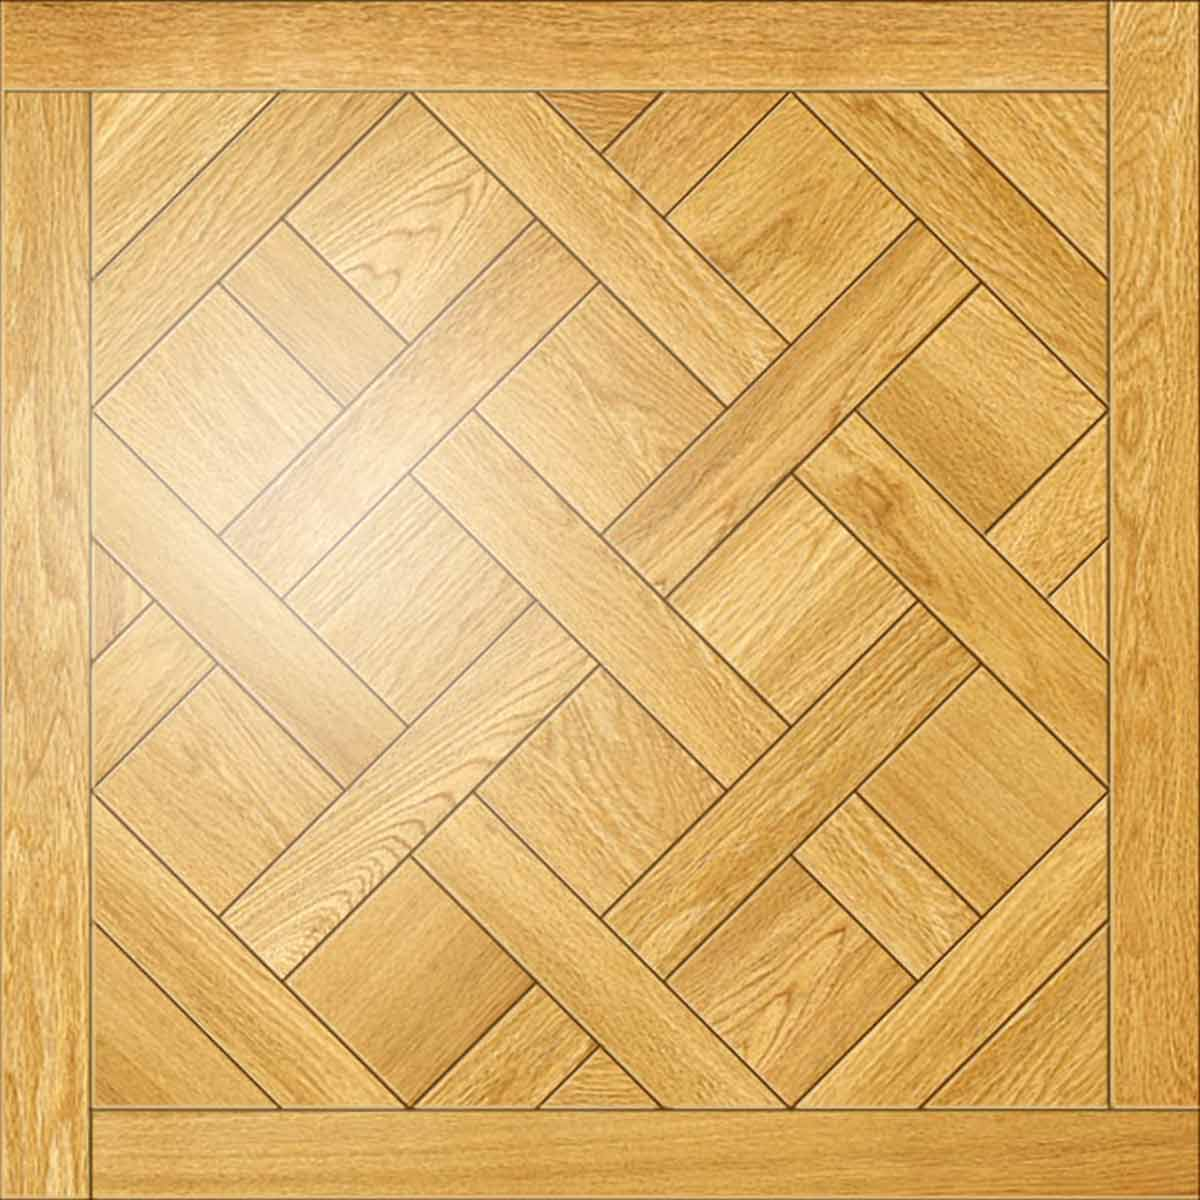 Versailles Parquet Face Taped Square Edge Straight Cut Unfinished